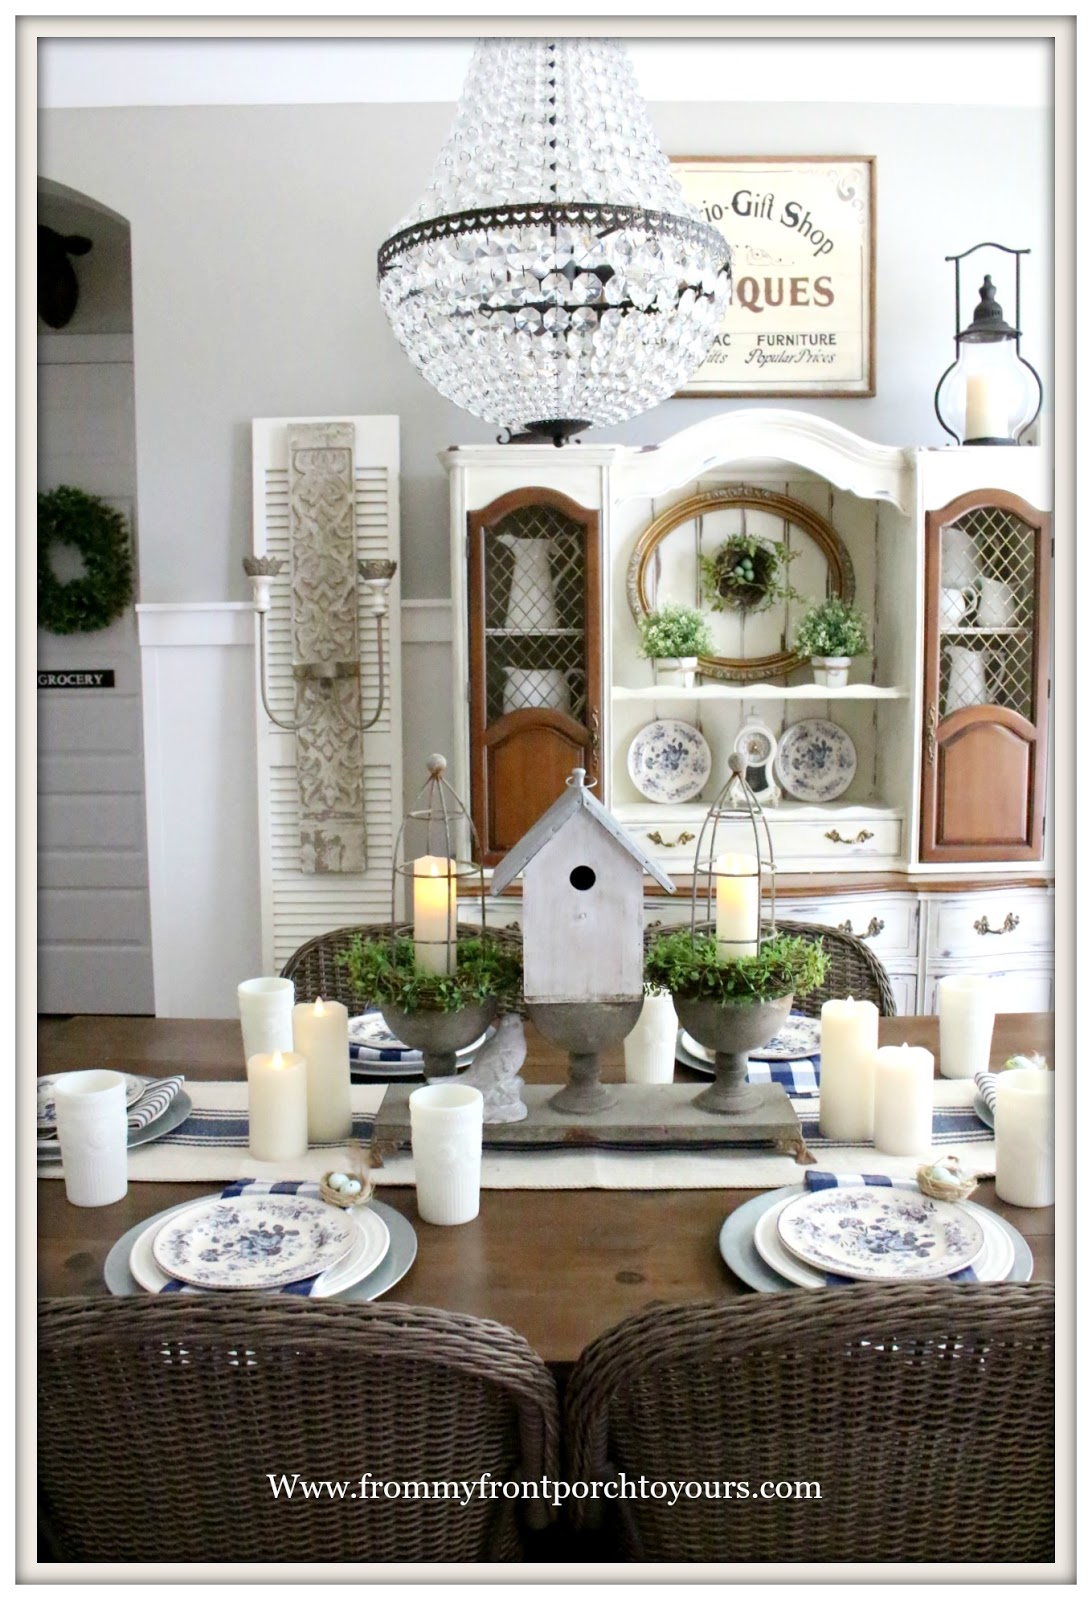 From My Front Porch To Yours: French Farmhouse Sconces